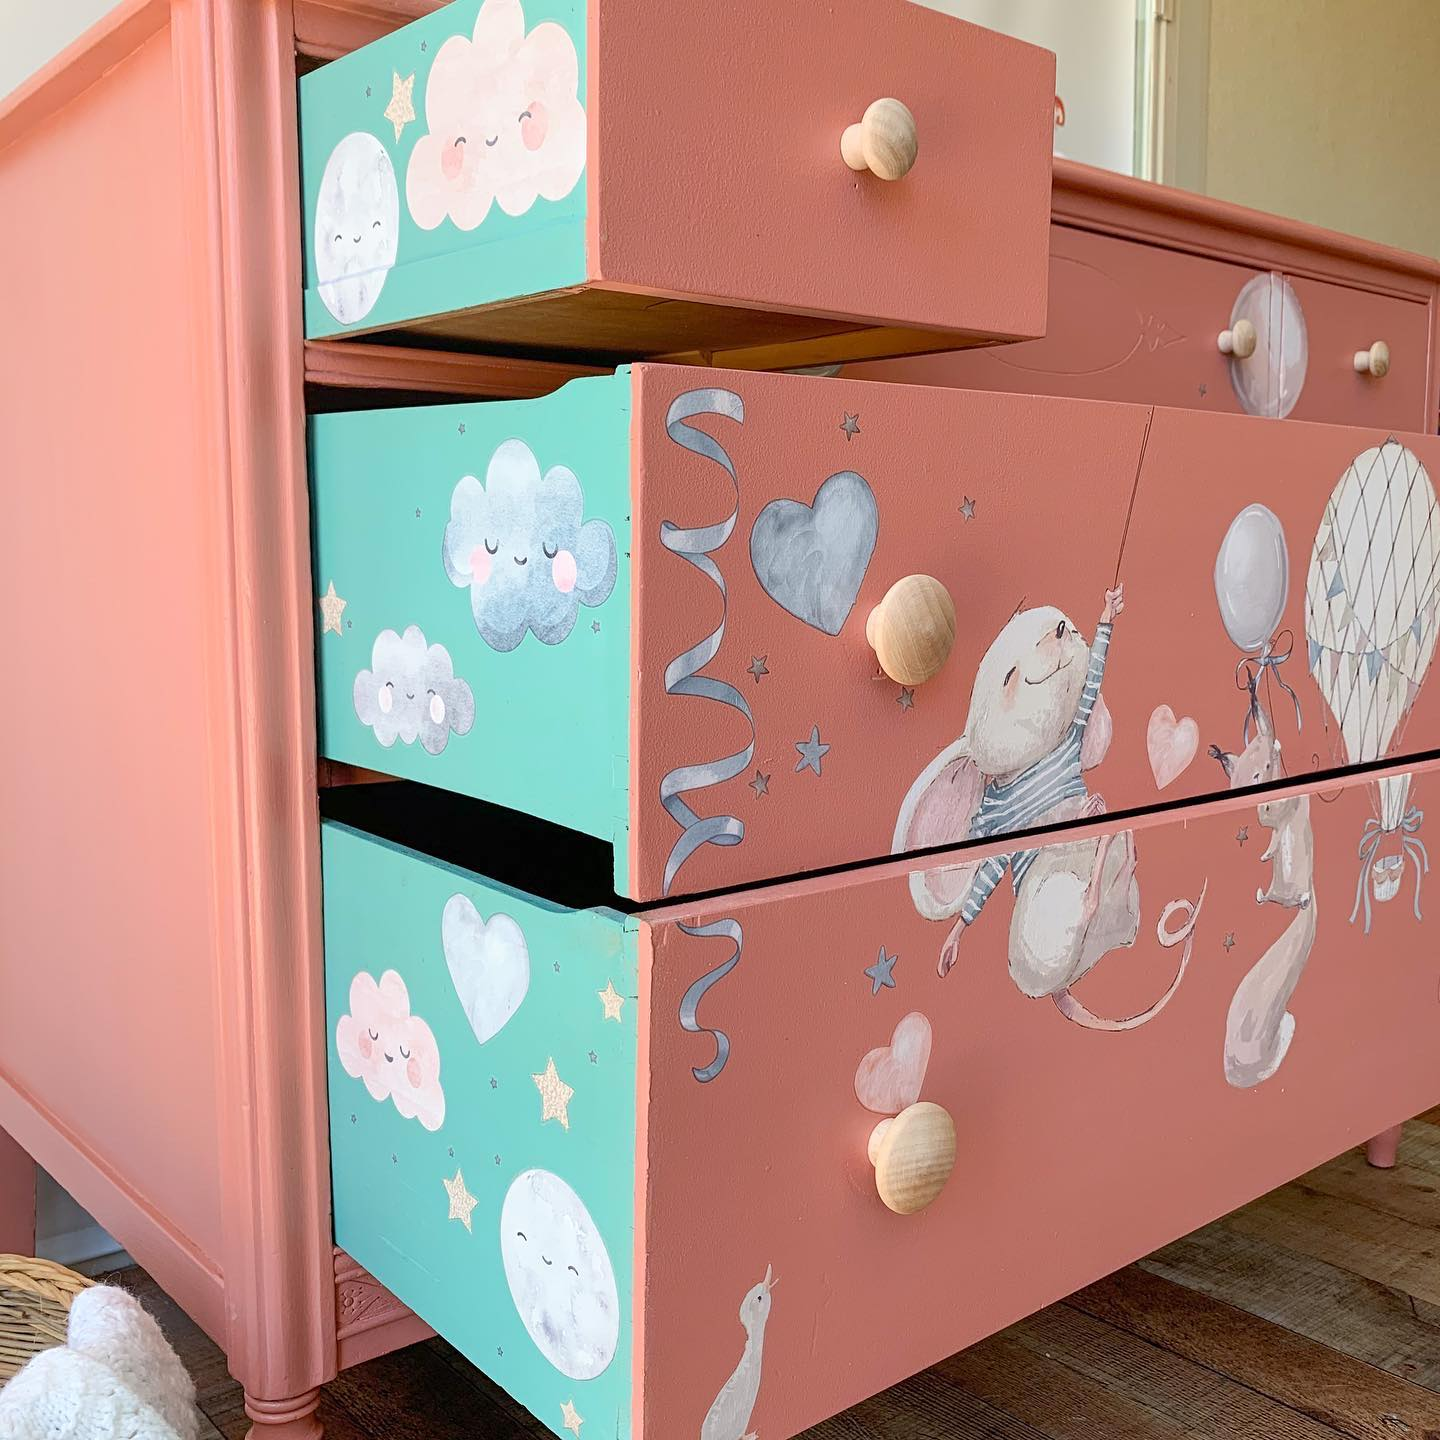 Changing Table/Dresser for Nursery in Peachy Keen and Bliss